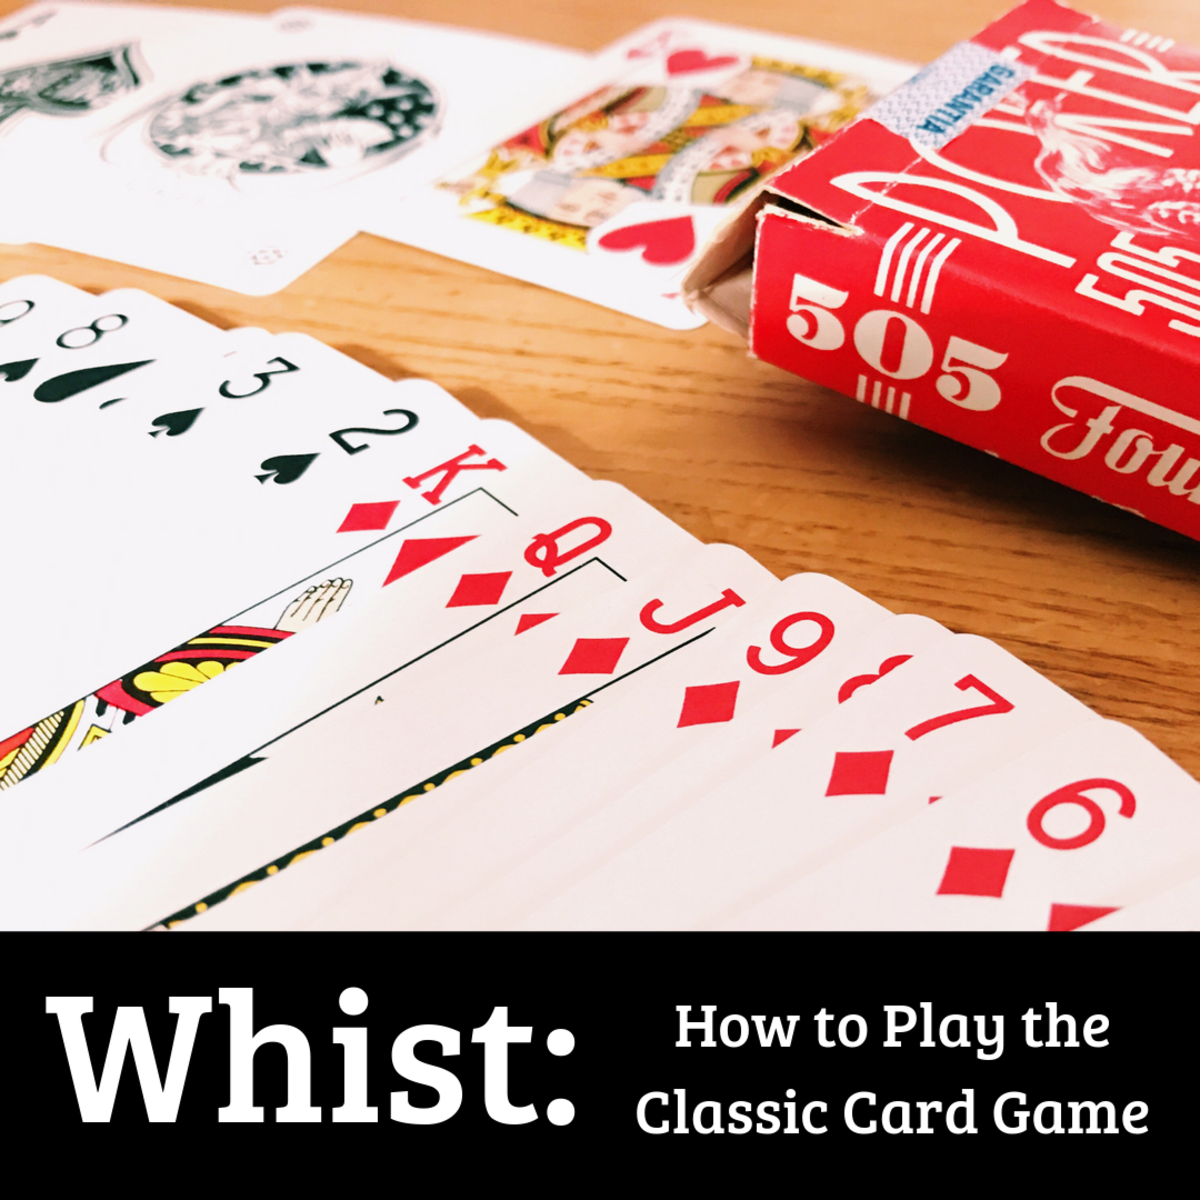 How to Play the Card Game Whist